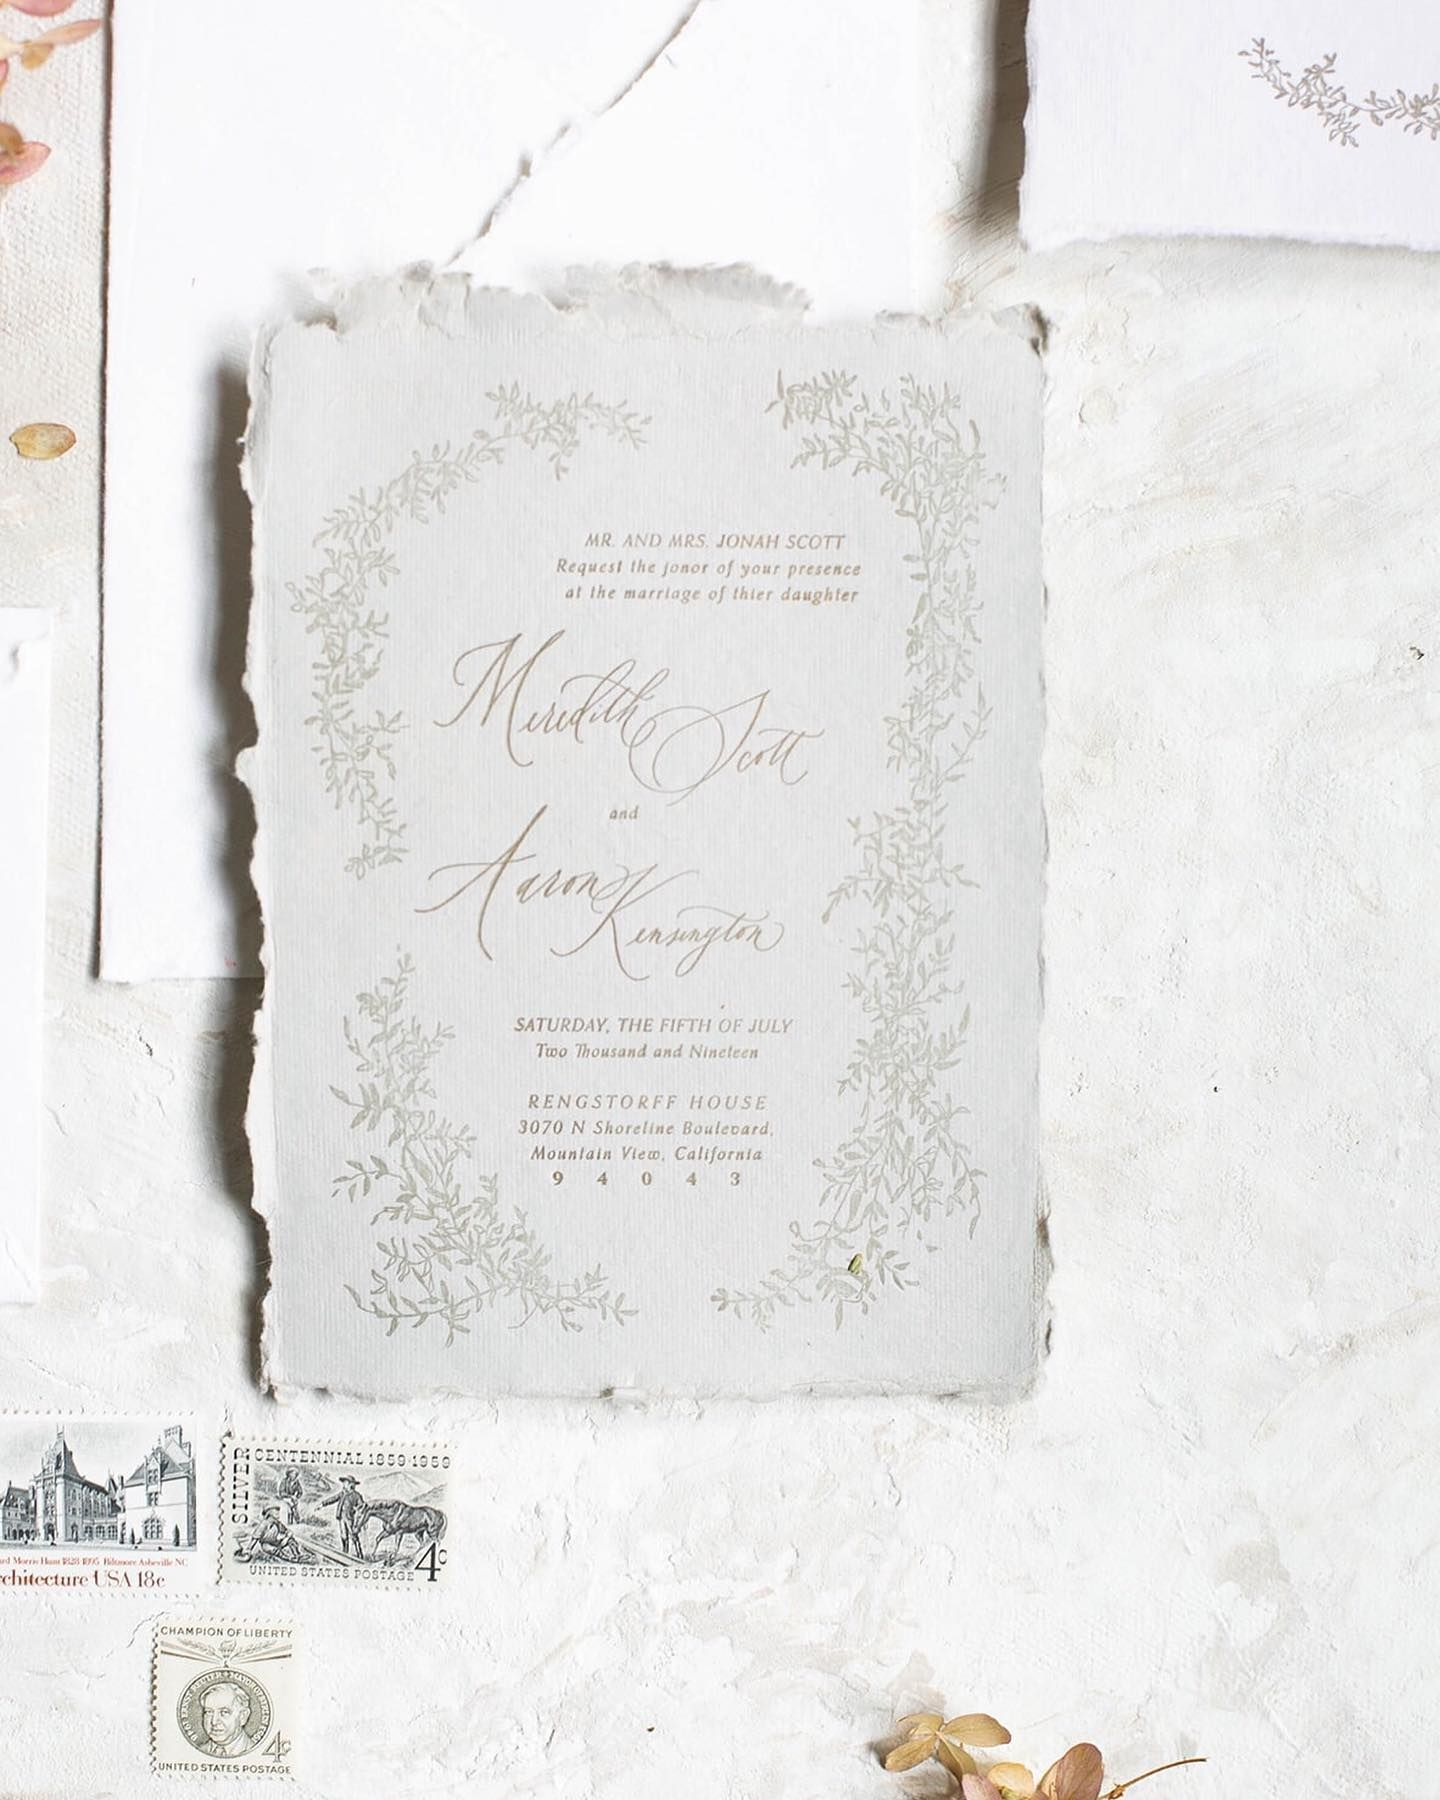 Full Day Of Shooting For Thefloraclub Has Me Wishing It Were Like This Everyday The Les Feuilles Suite In Wedding Calligrapher Sonoma Wedding Napa Wedding